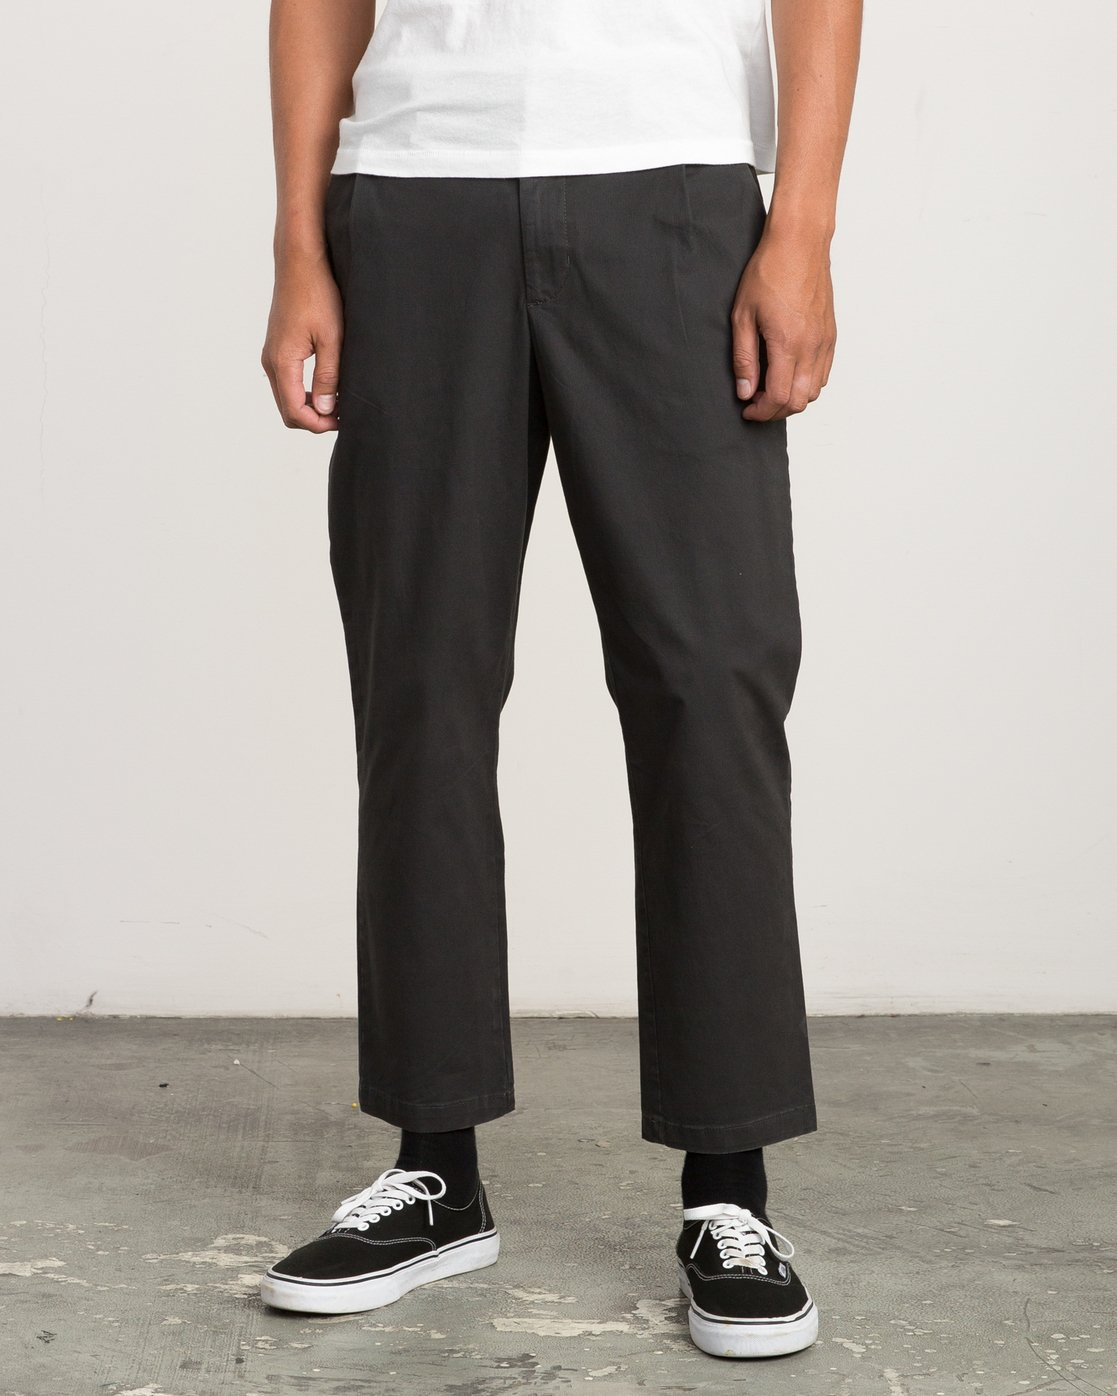 outlet sale new arrival big selection Chaos Flood Chino Pant